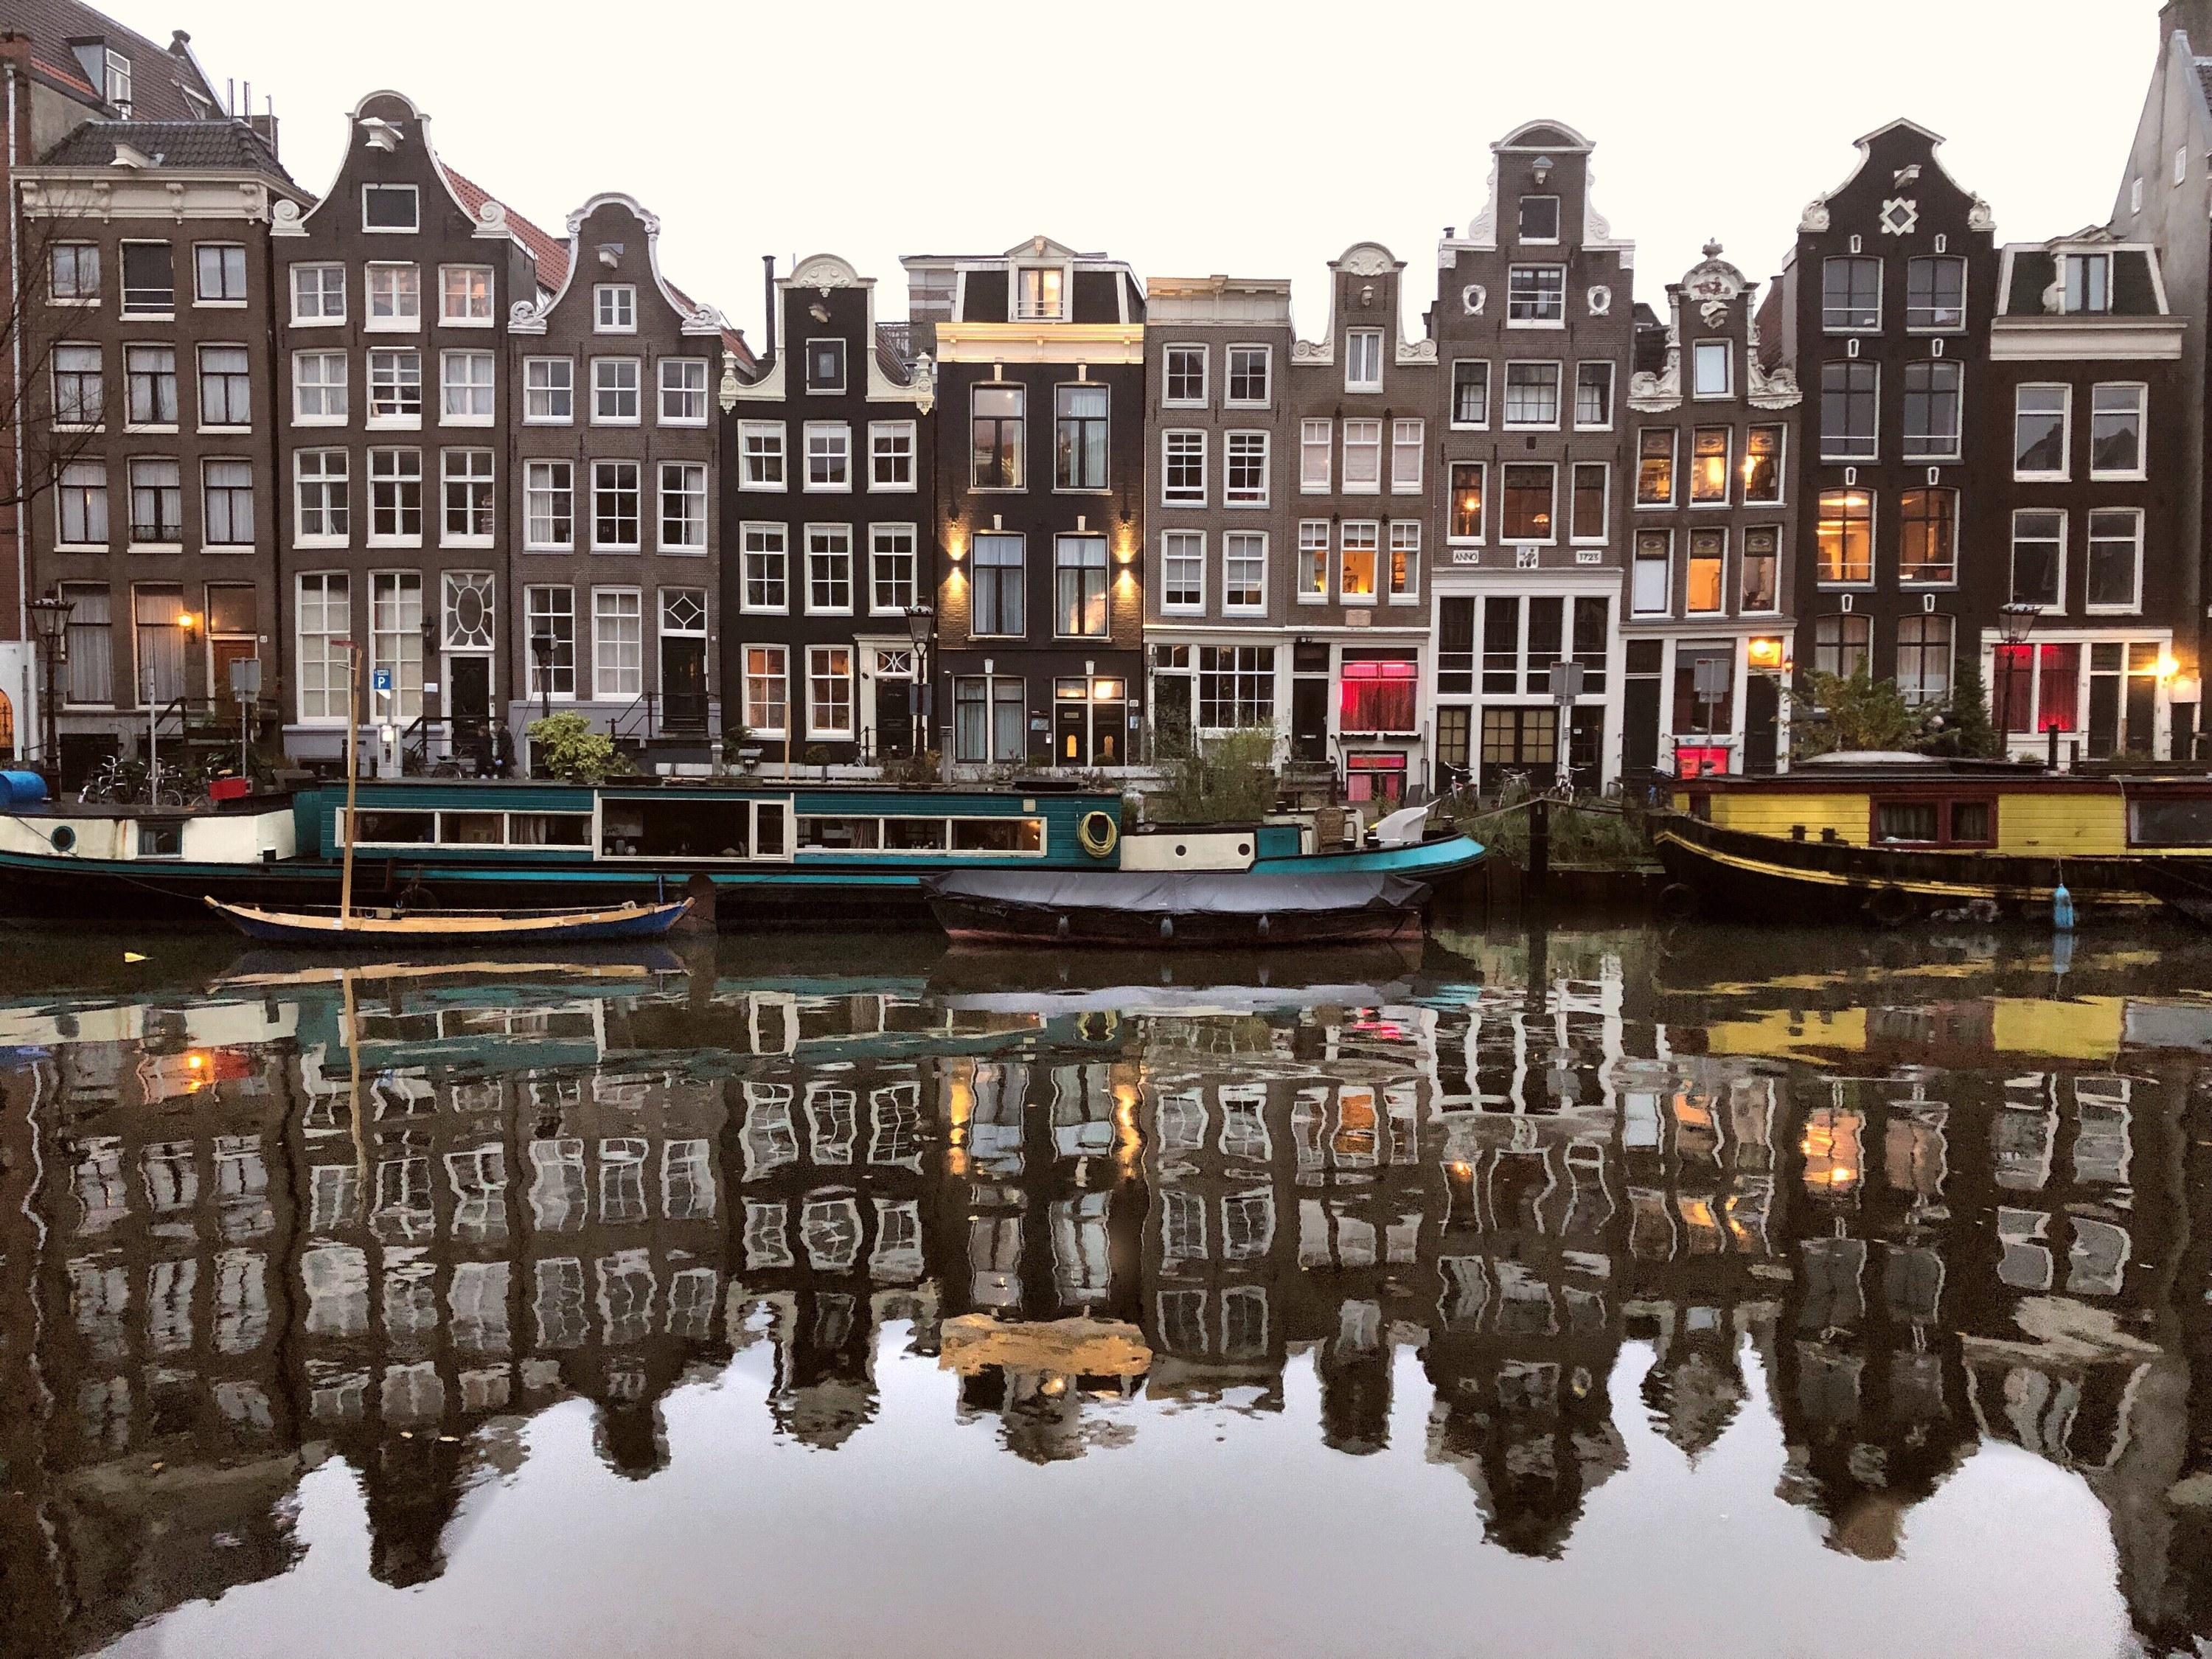 A view of the houses along the canal in Amsterdam